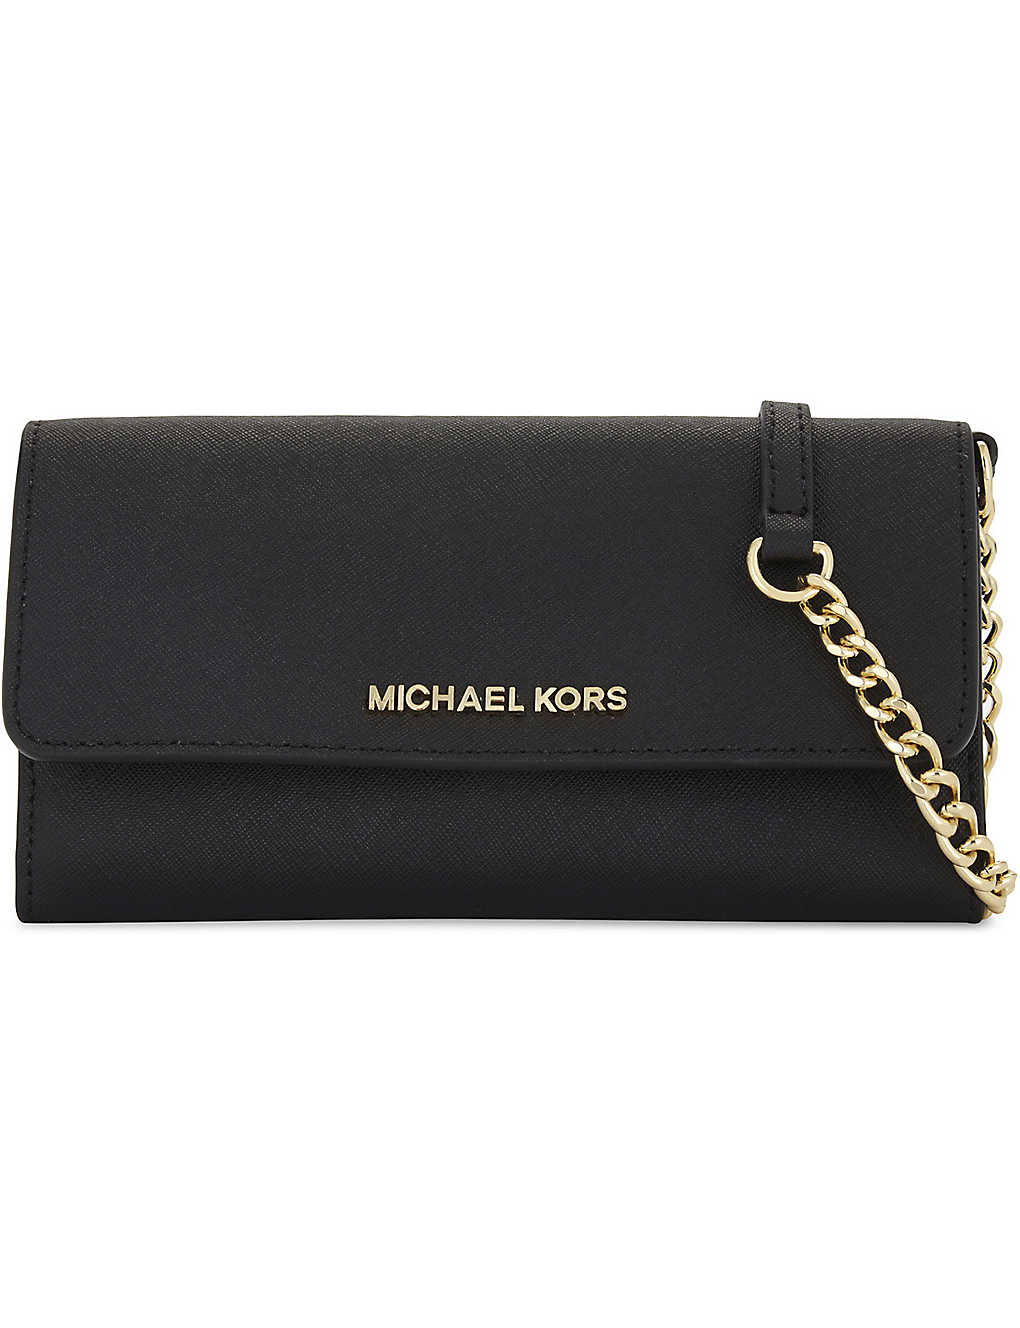 1a36e46c3a639f MICHAEL MICHAEL KORS - Jet Set Travel wallet on a chain | Selfridges.com